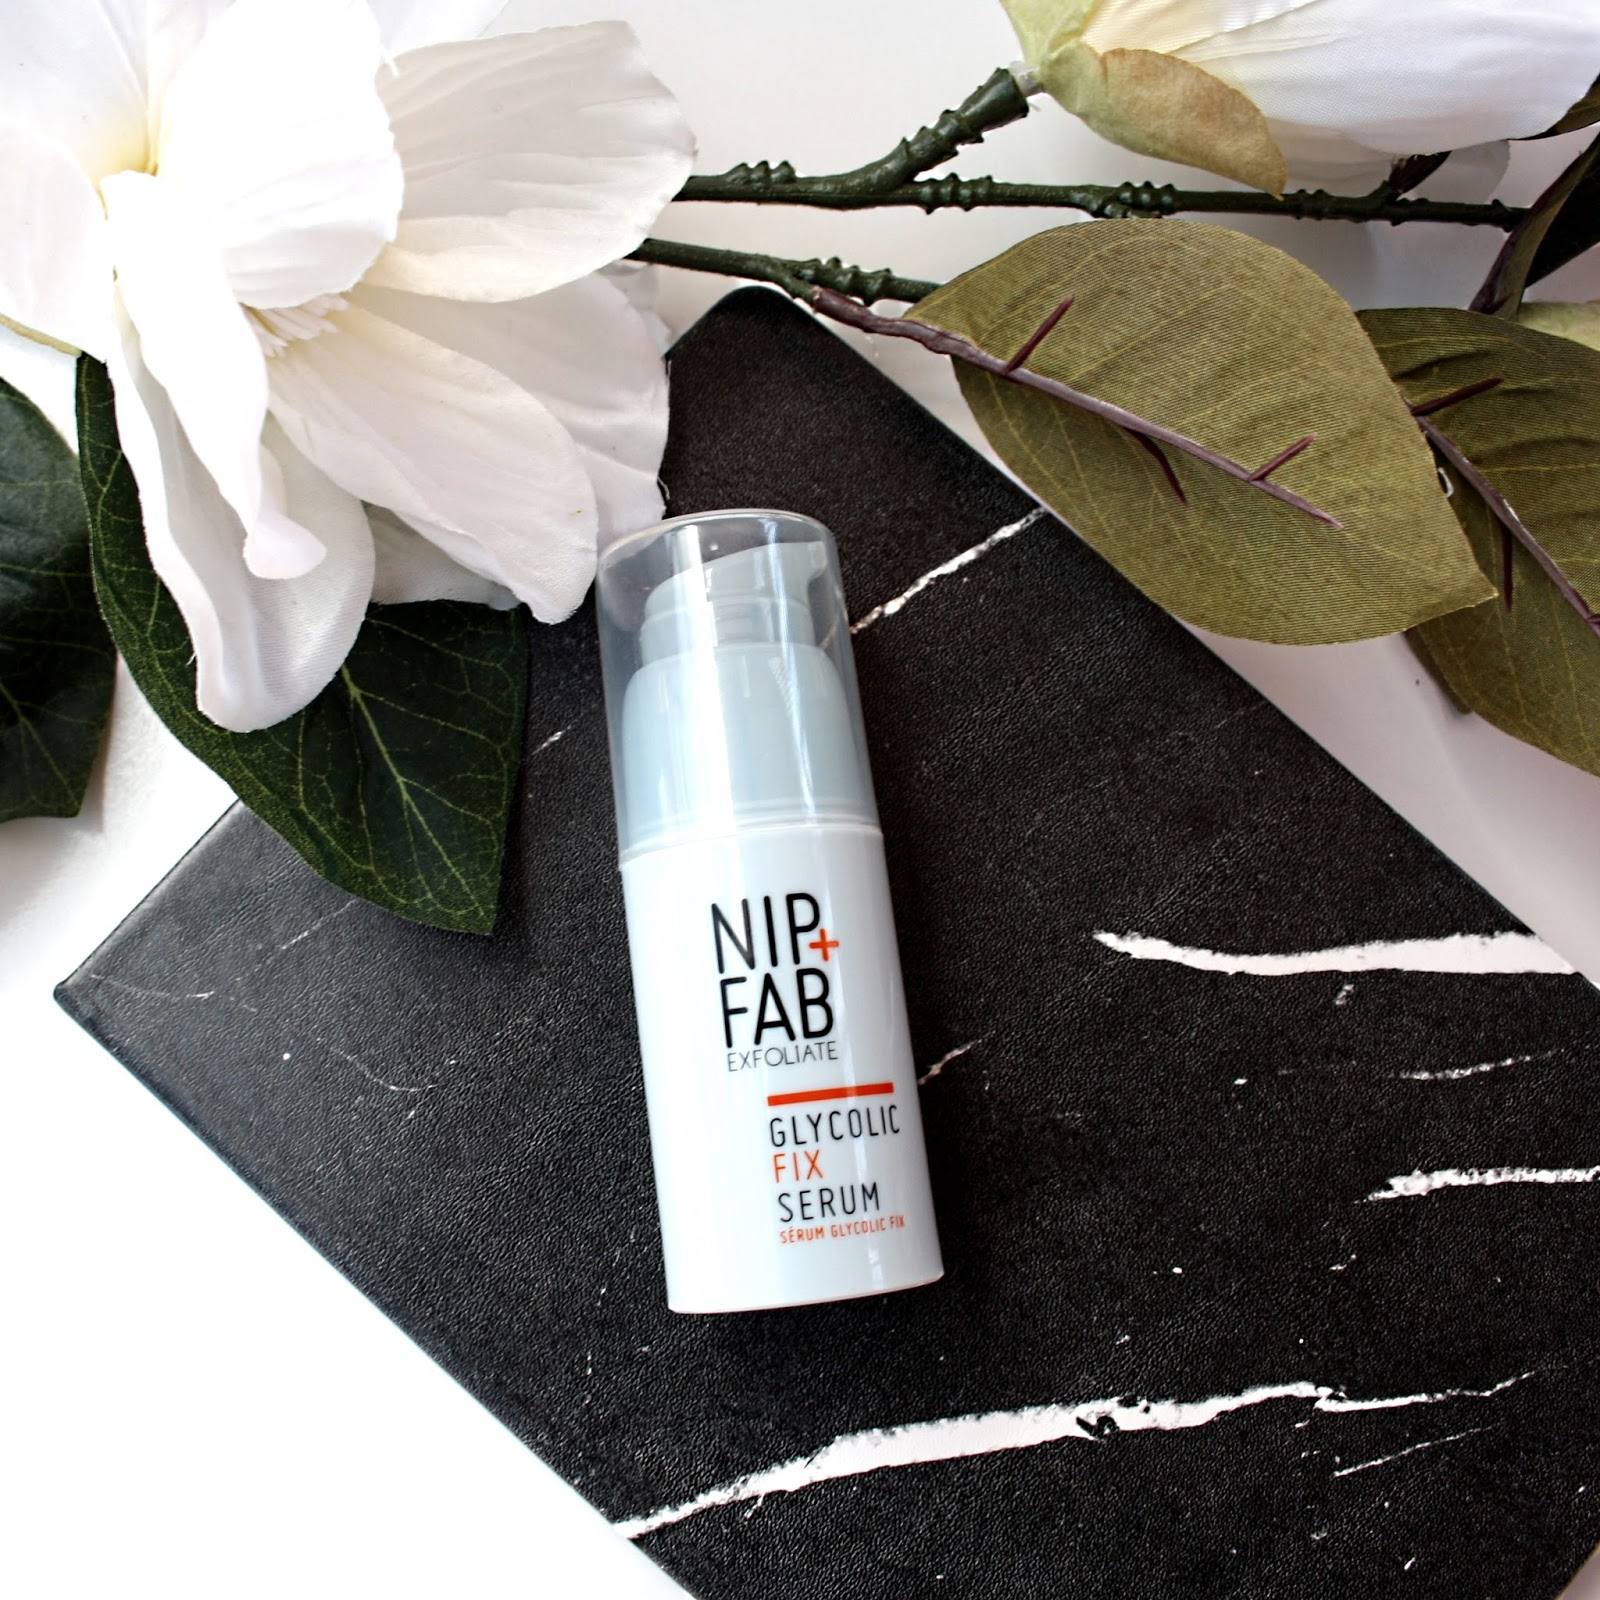 nip and fab glycolic fix serum review